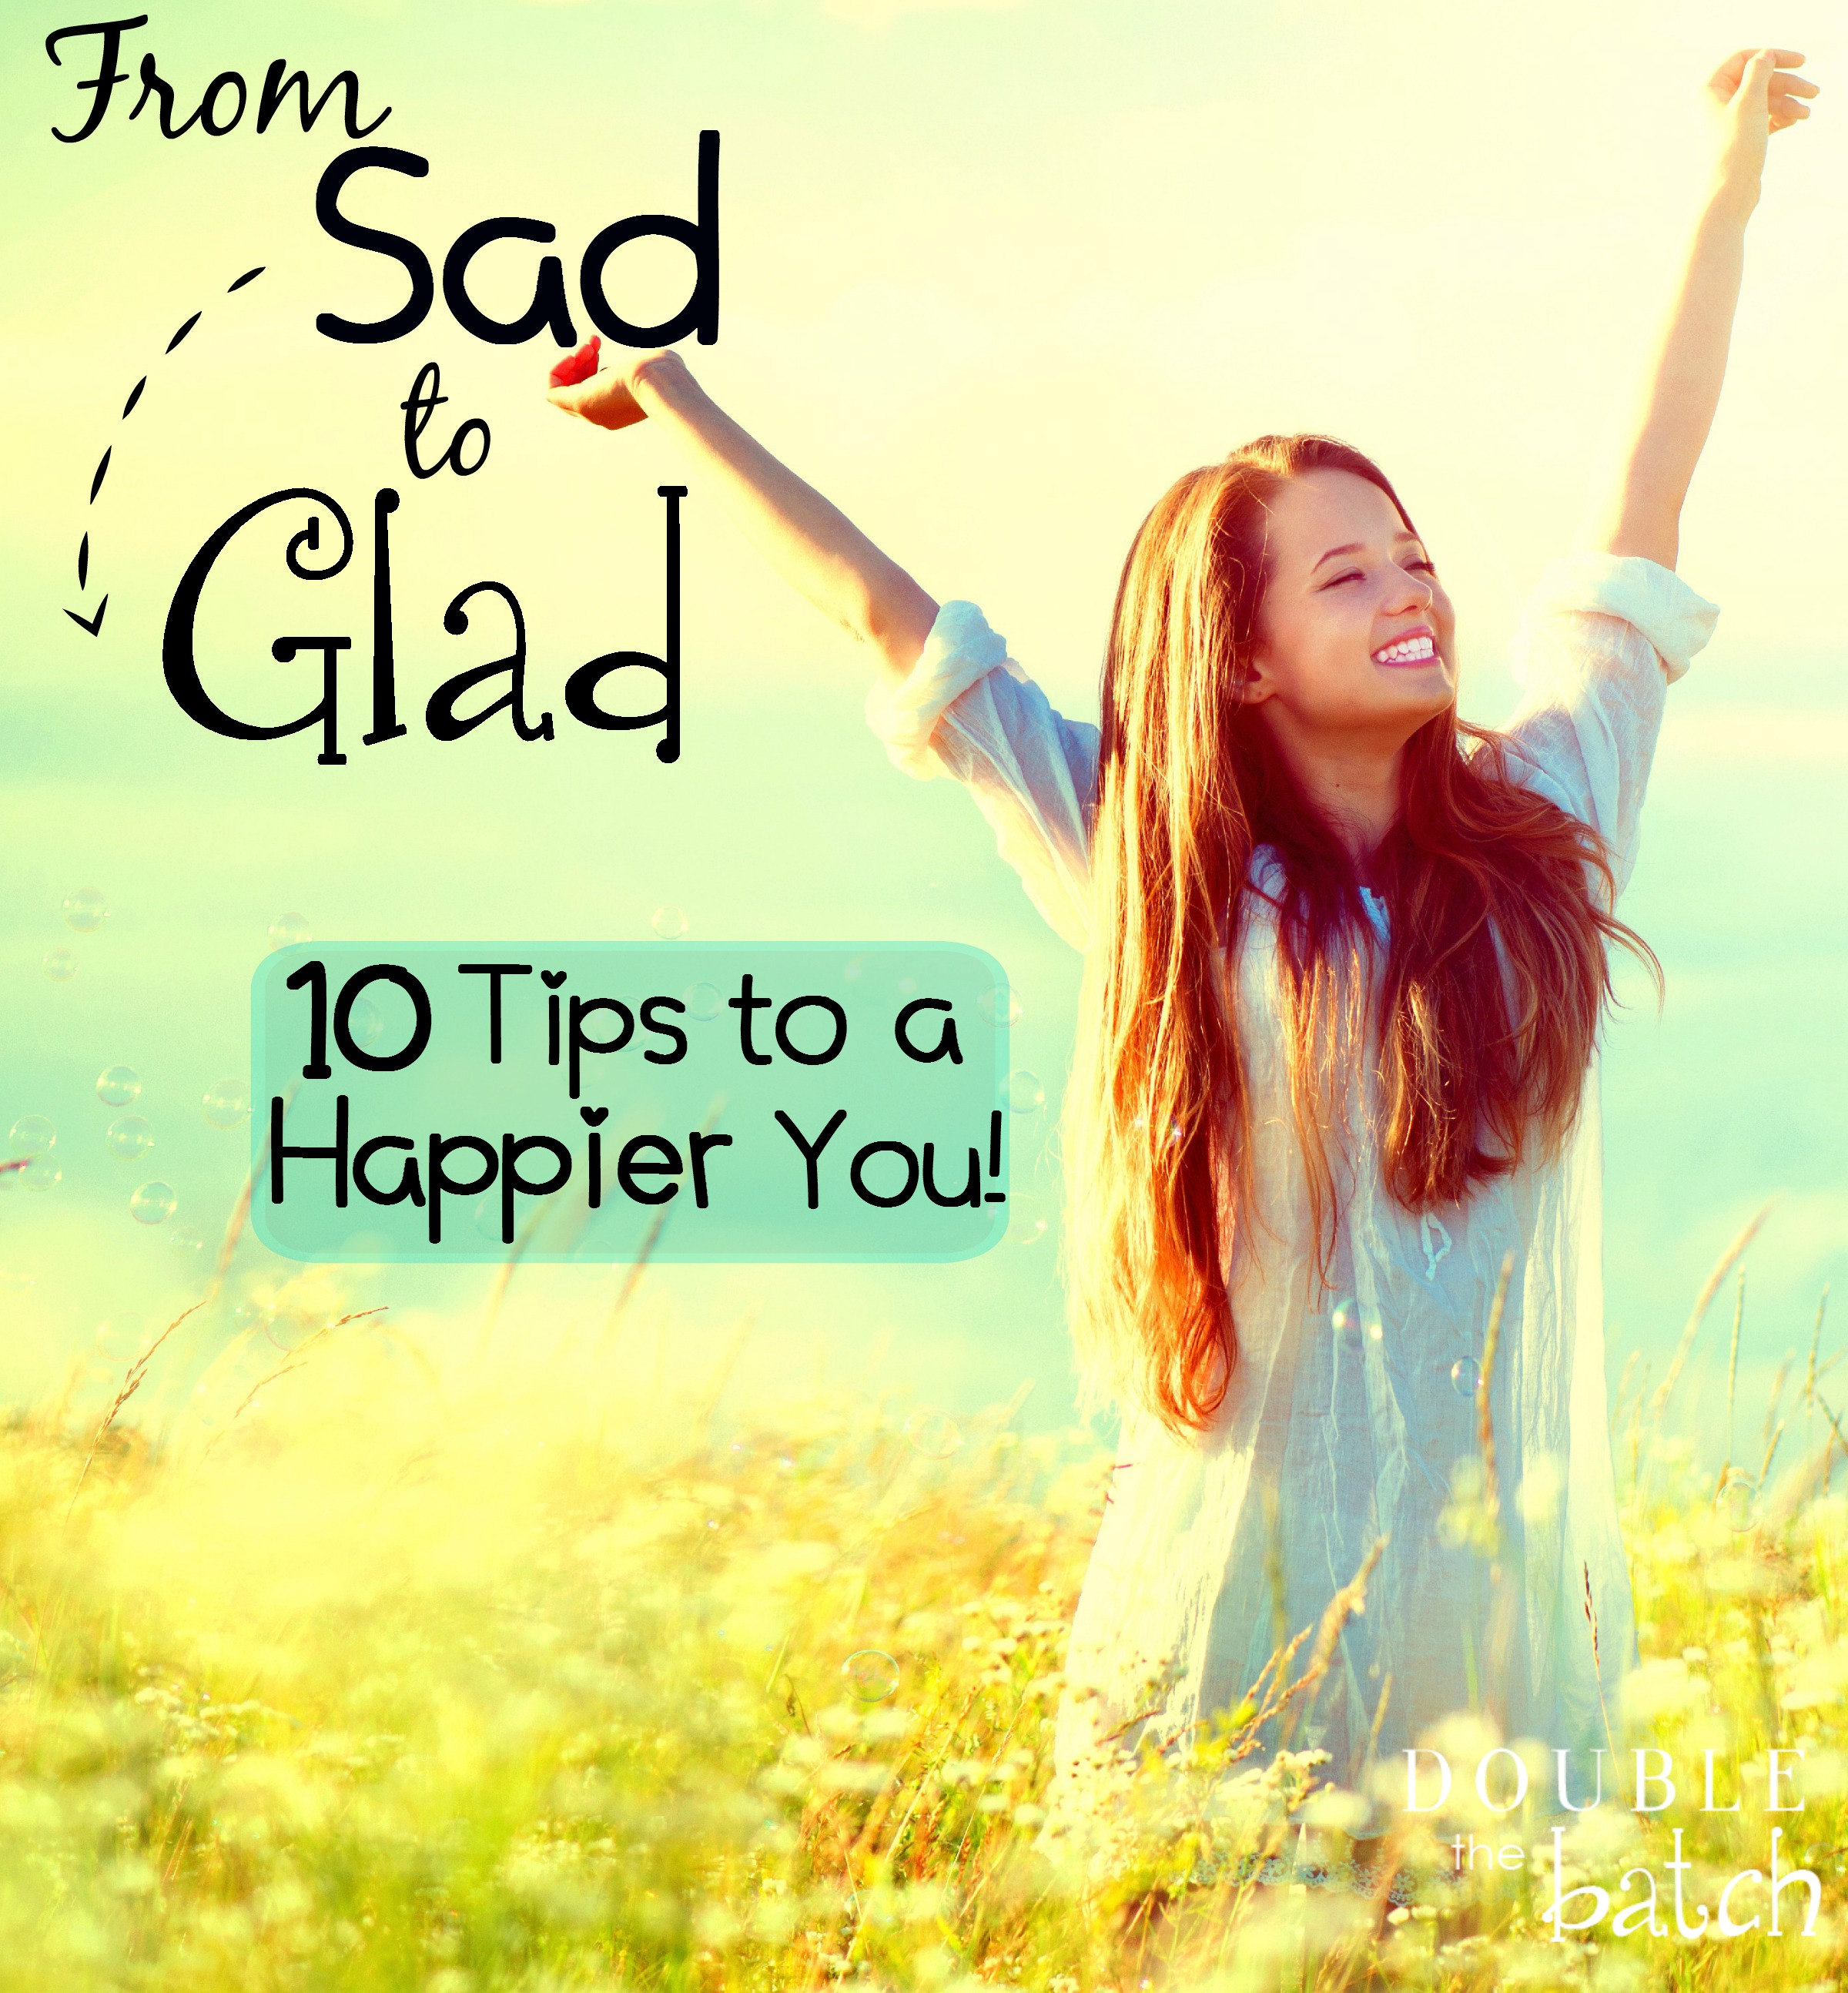 From Sad to Glad – 10 Tips to a More Happy You